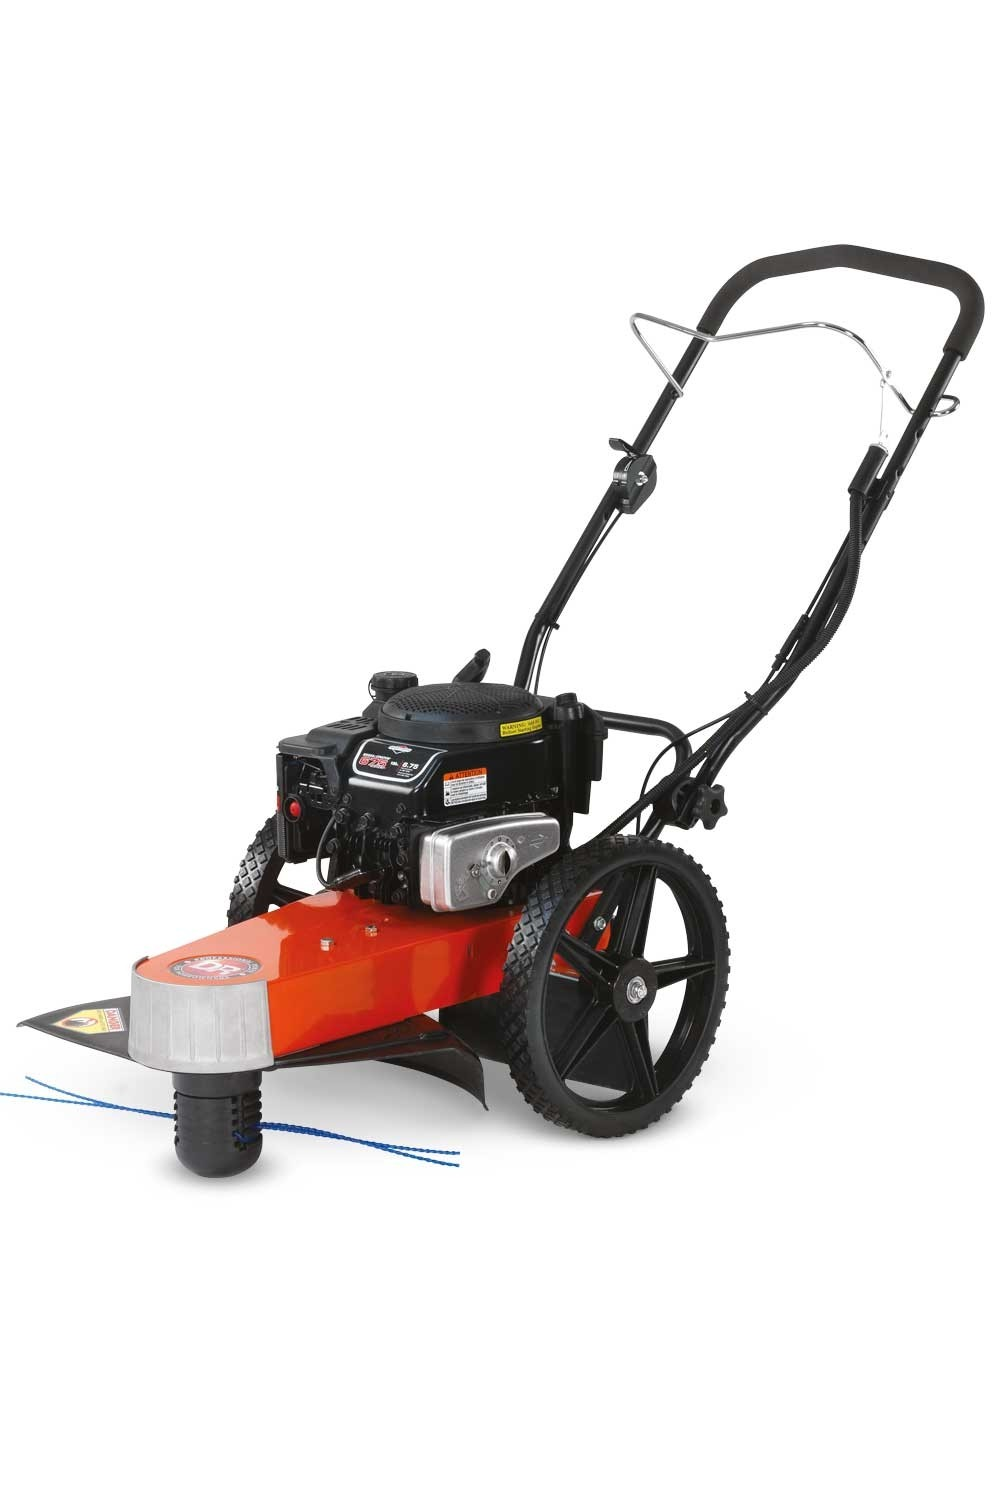 DR 7.25 PRO Wheeled Trimmer Mower